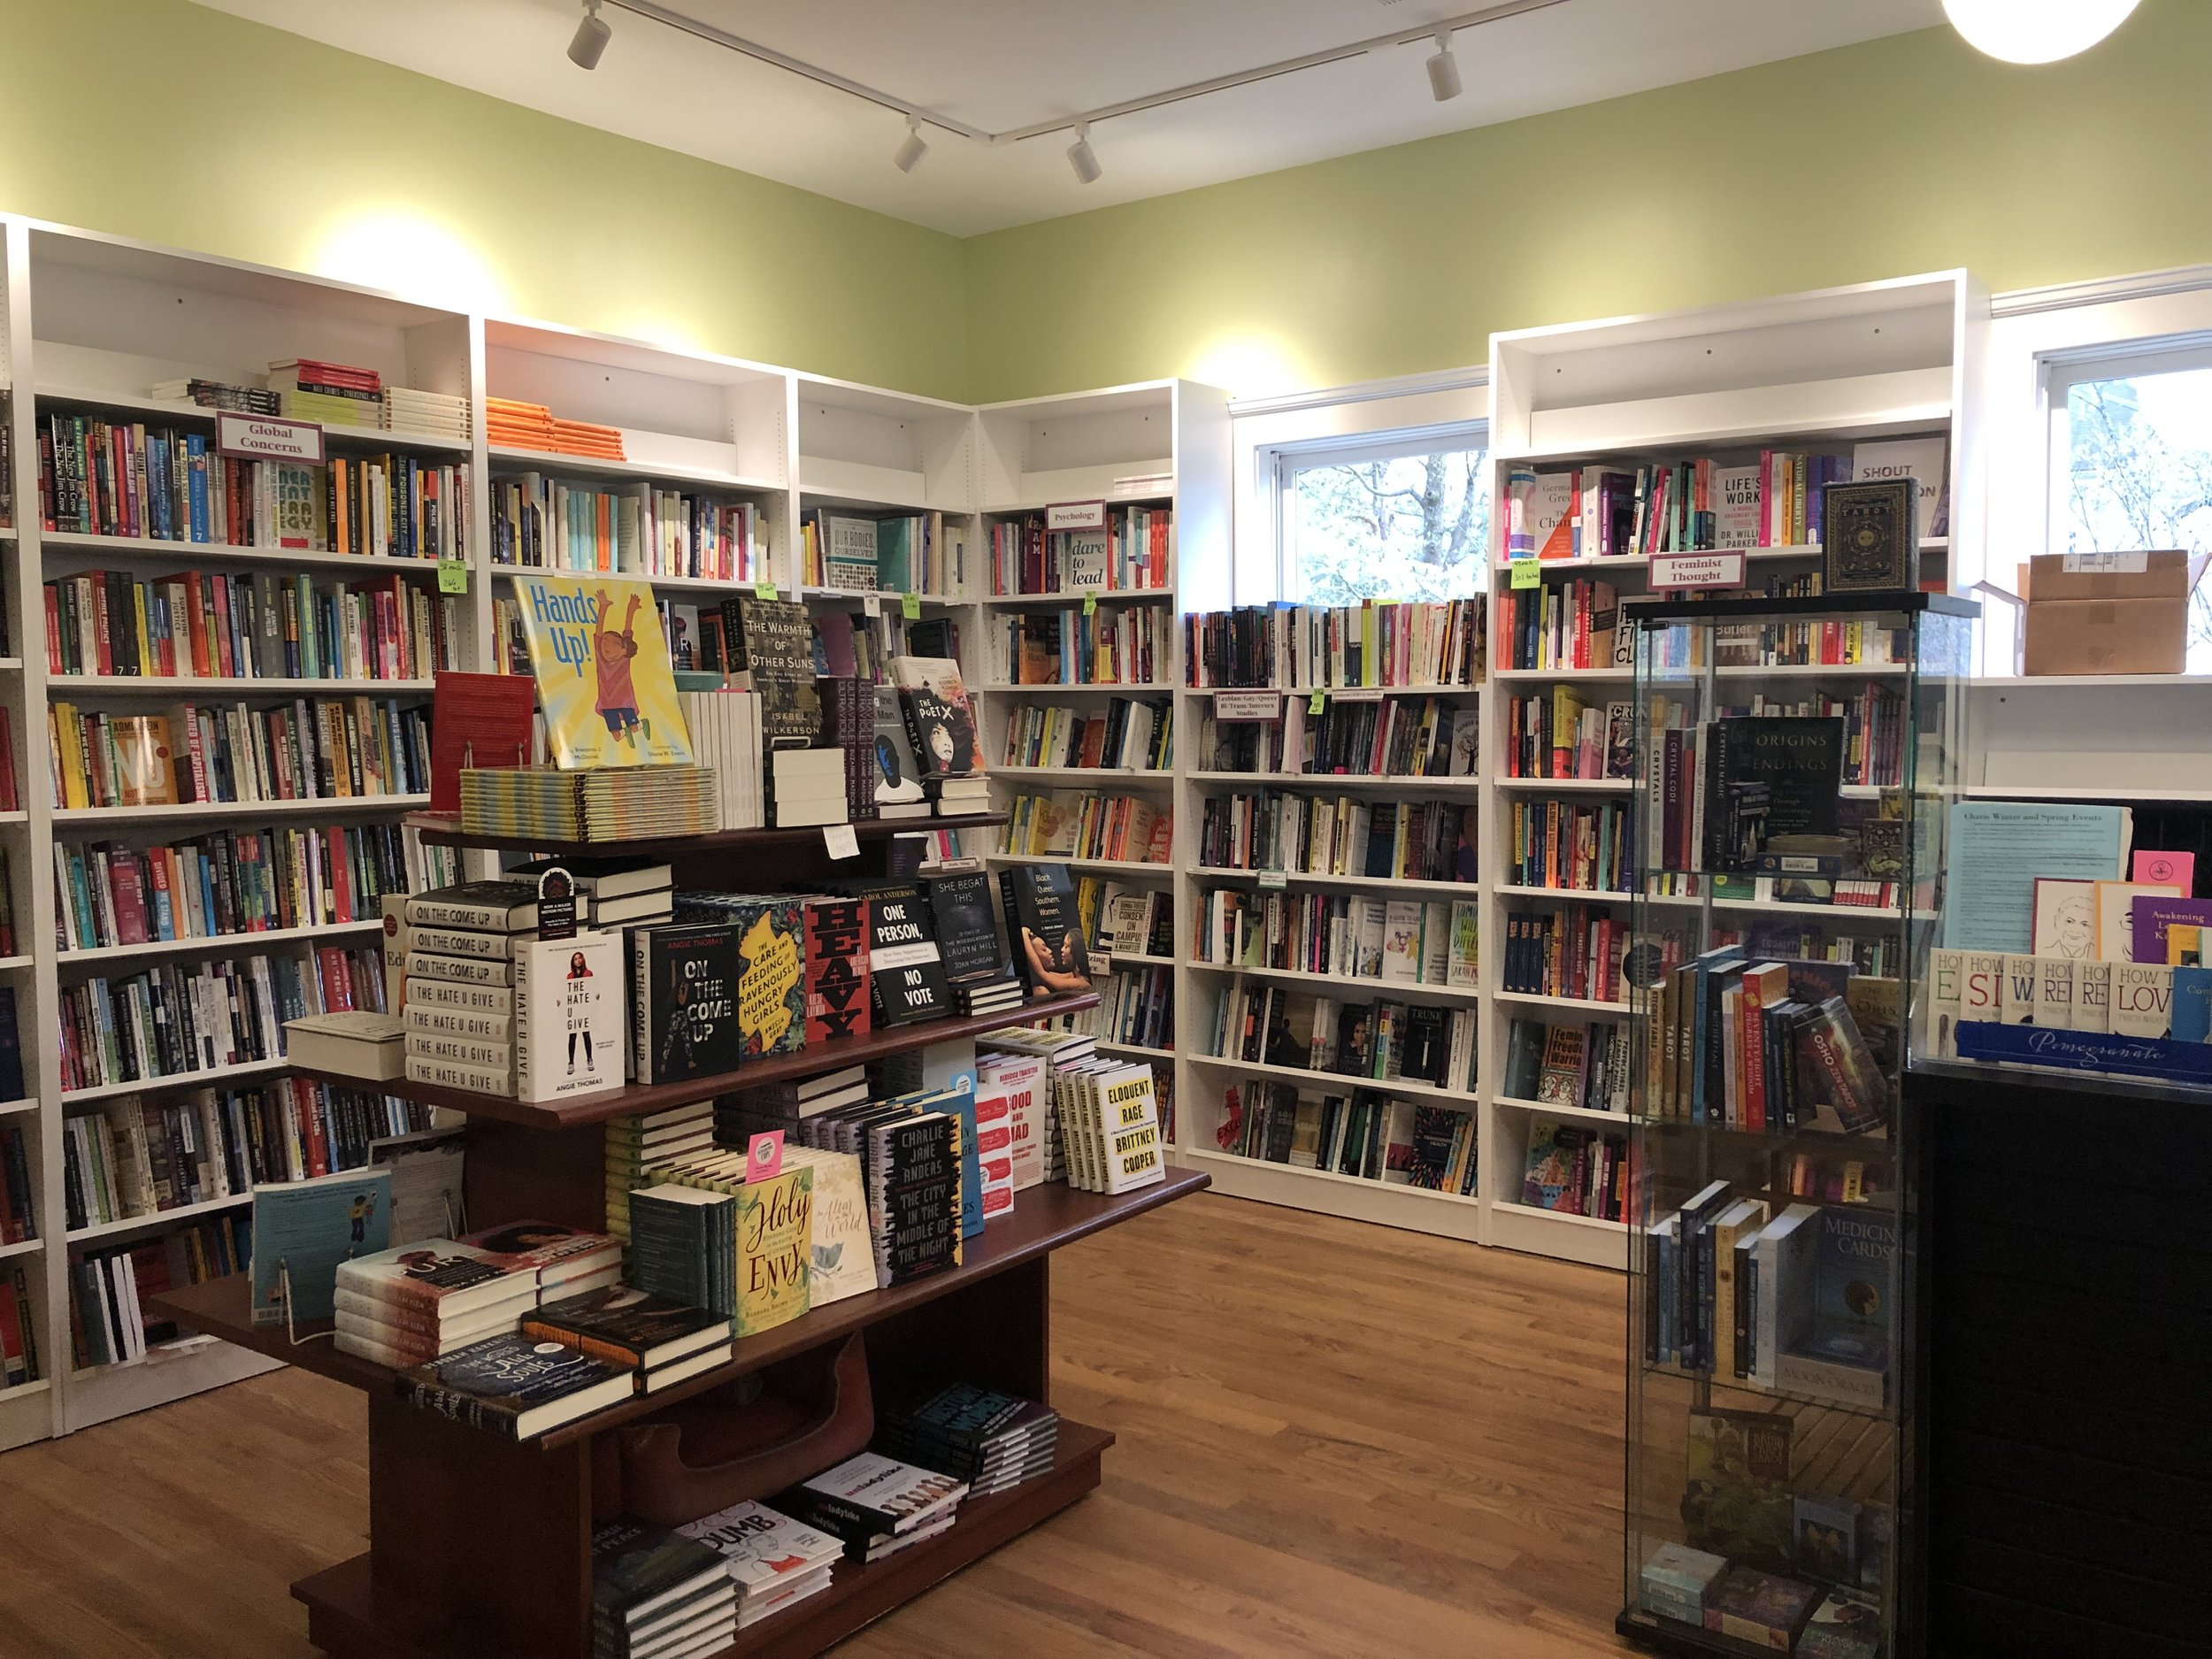 Charis bookstore moves to new home, but LGBTQ traditions remain